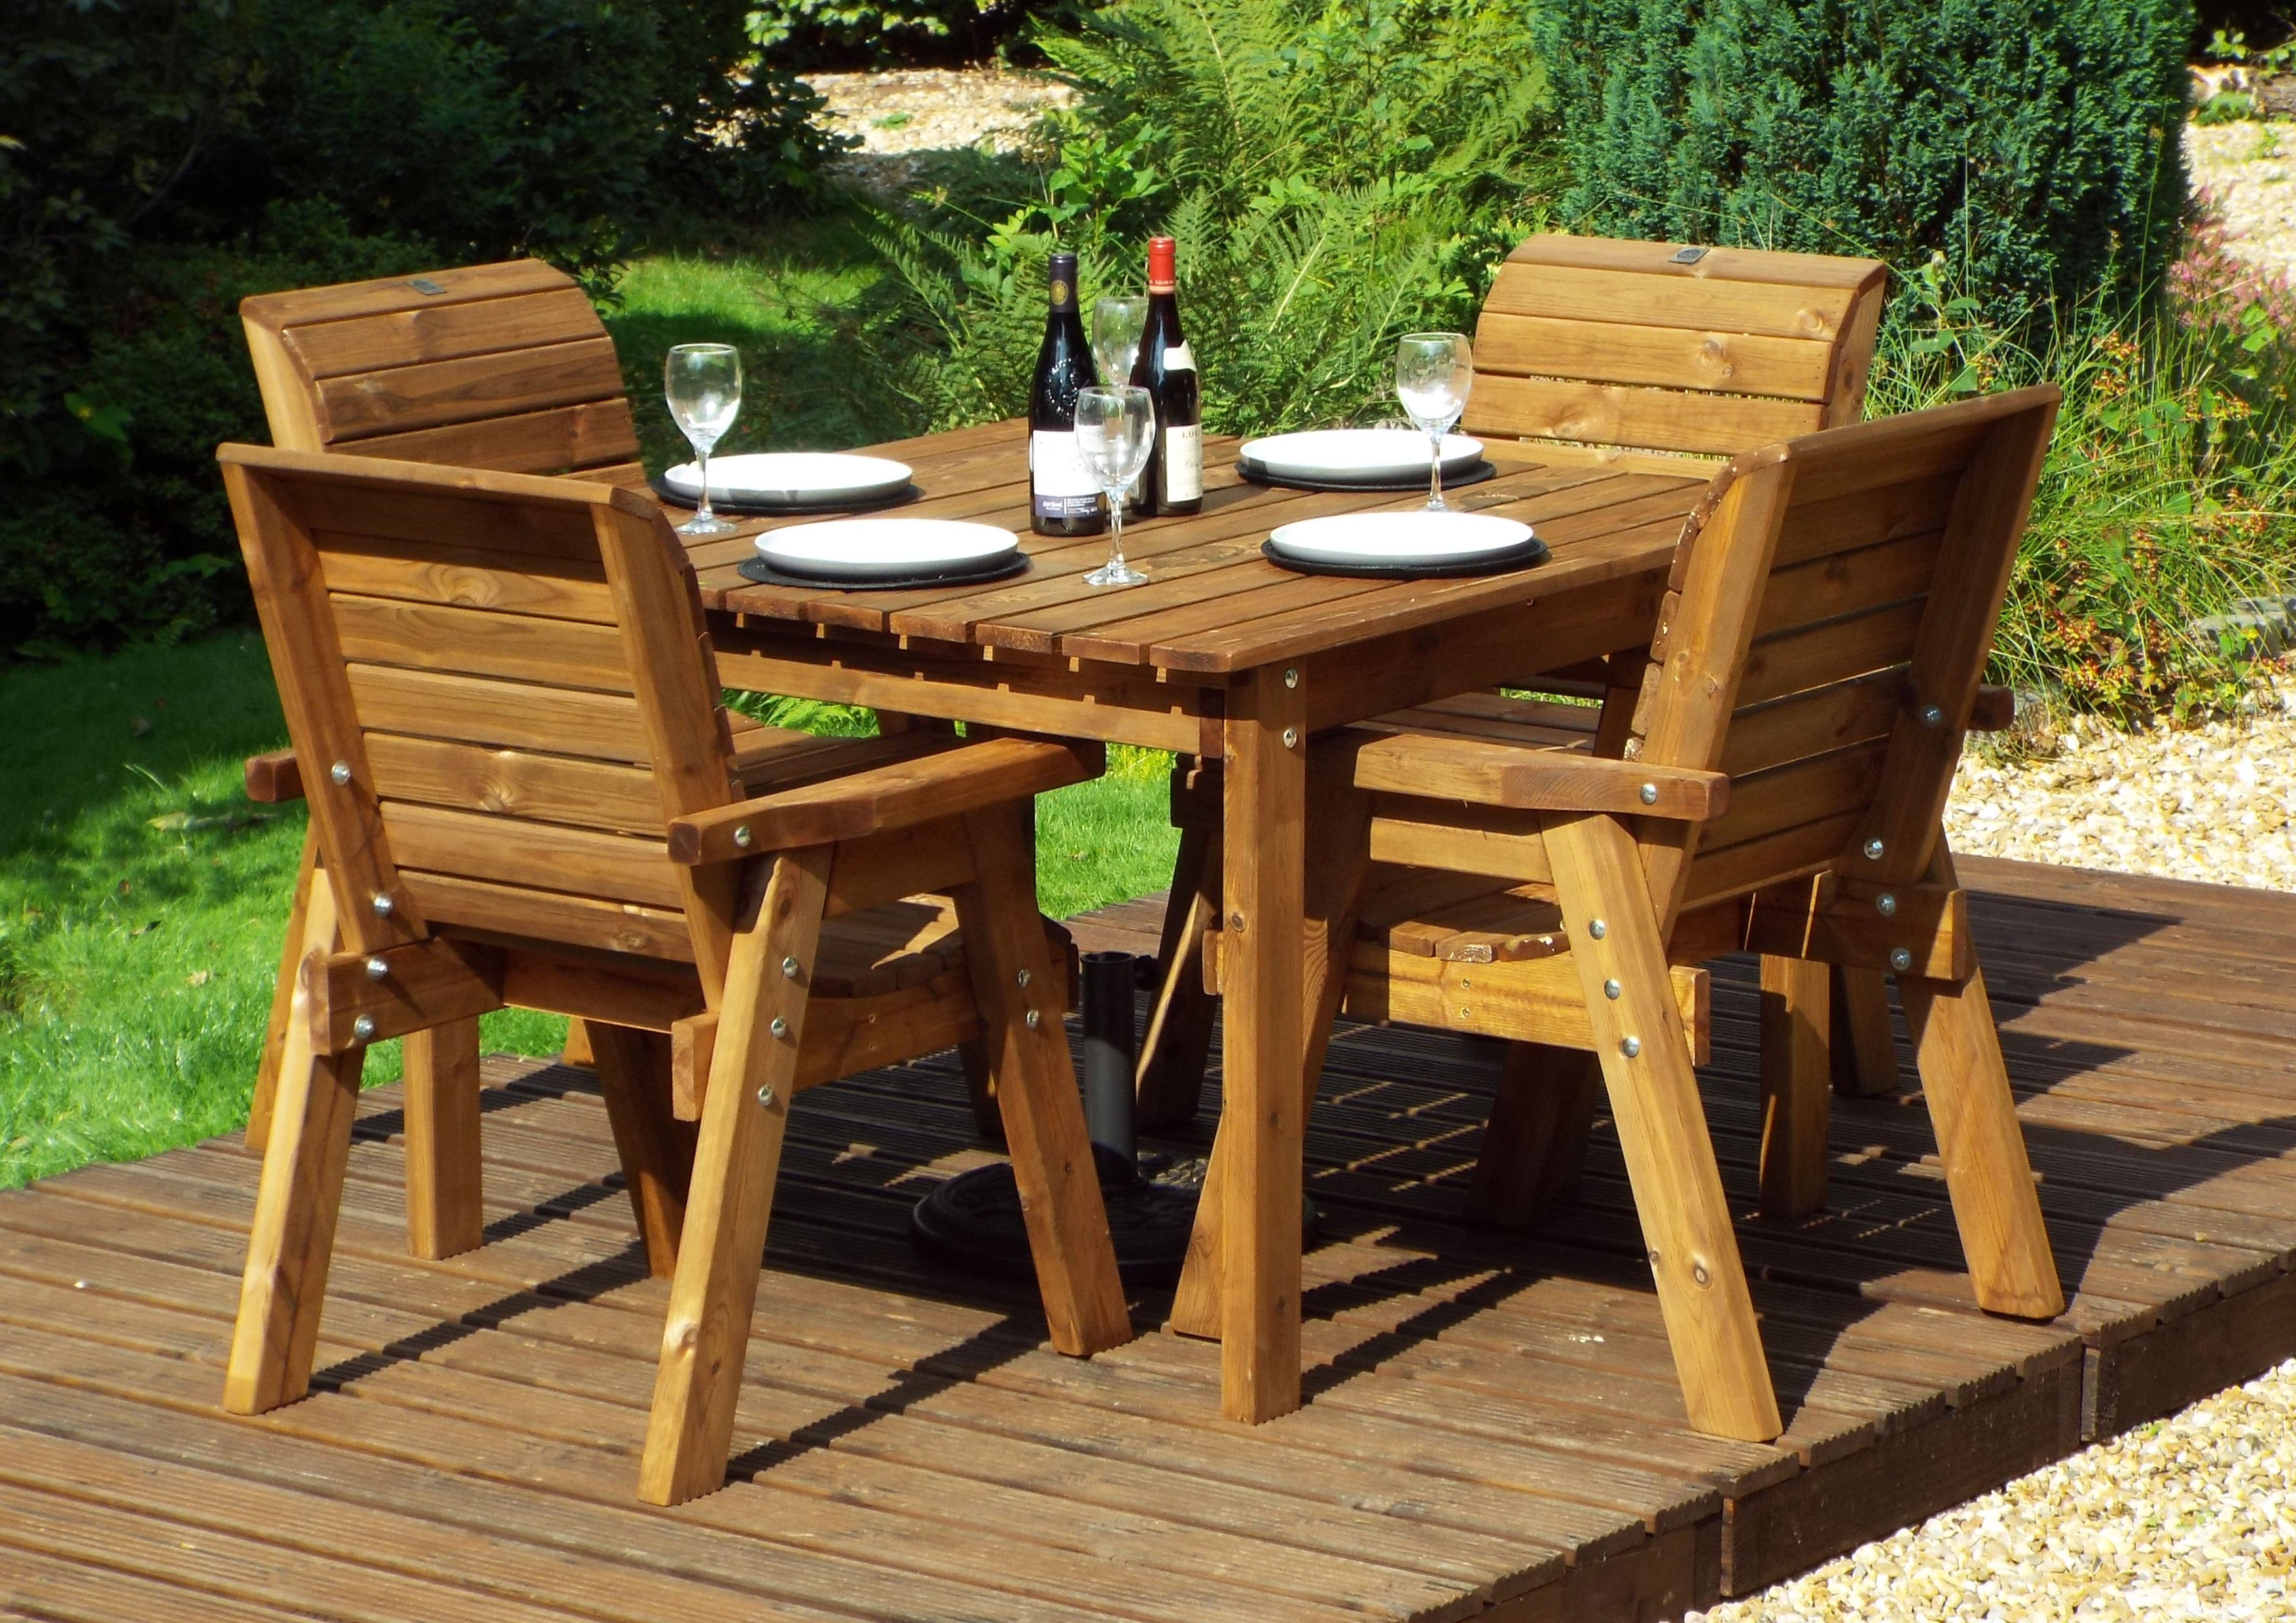 Details about Charles Taylor Gold Series Wooden Deluxe Garden Furniture 9  Seater Table Set